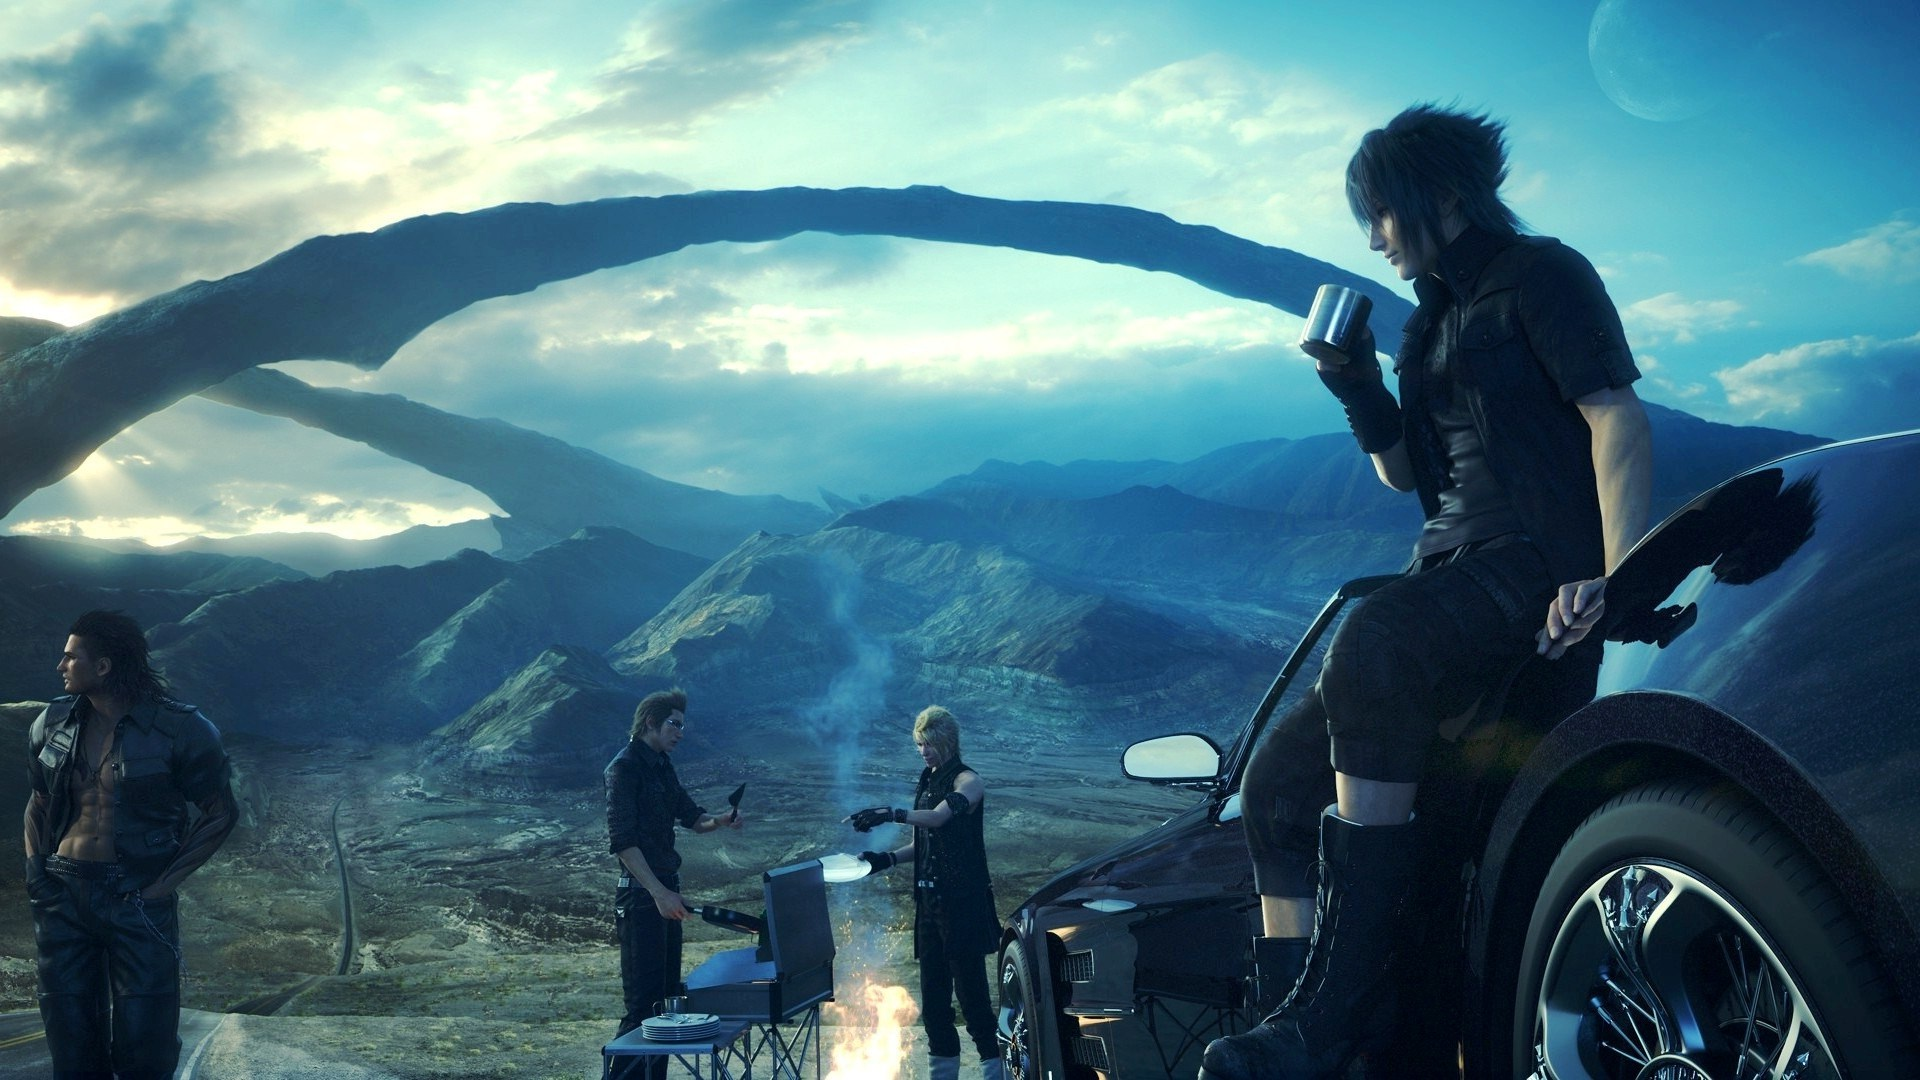 final-fantasy-xv-wallpaper-images